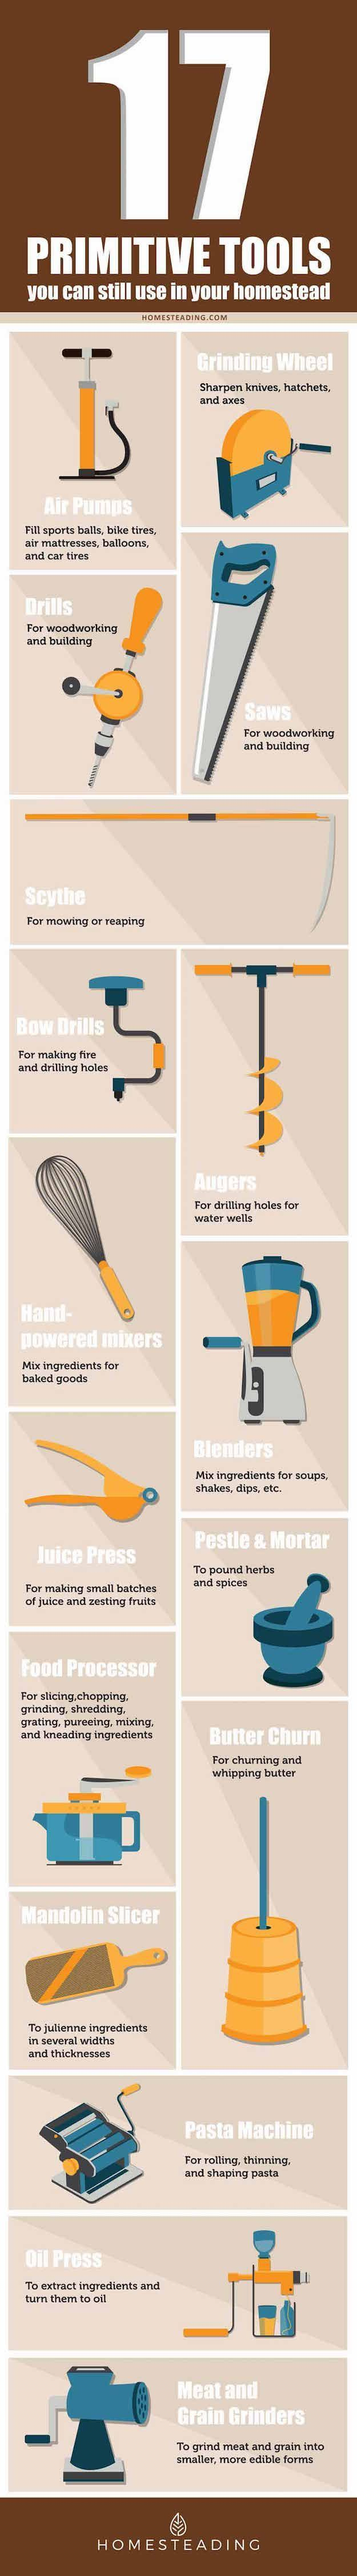 21 Hand-Powered Tools & Appliances | The Power Of Primitive Tools | Homesteading Ideas